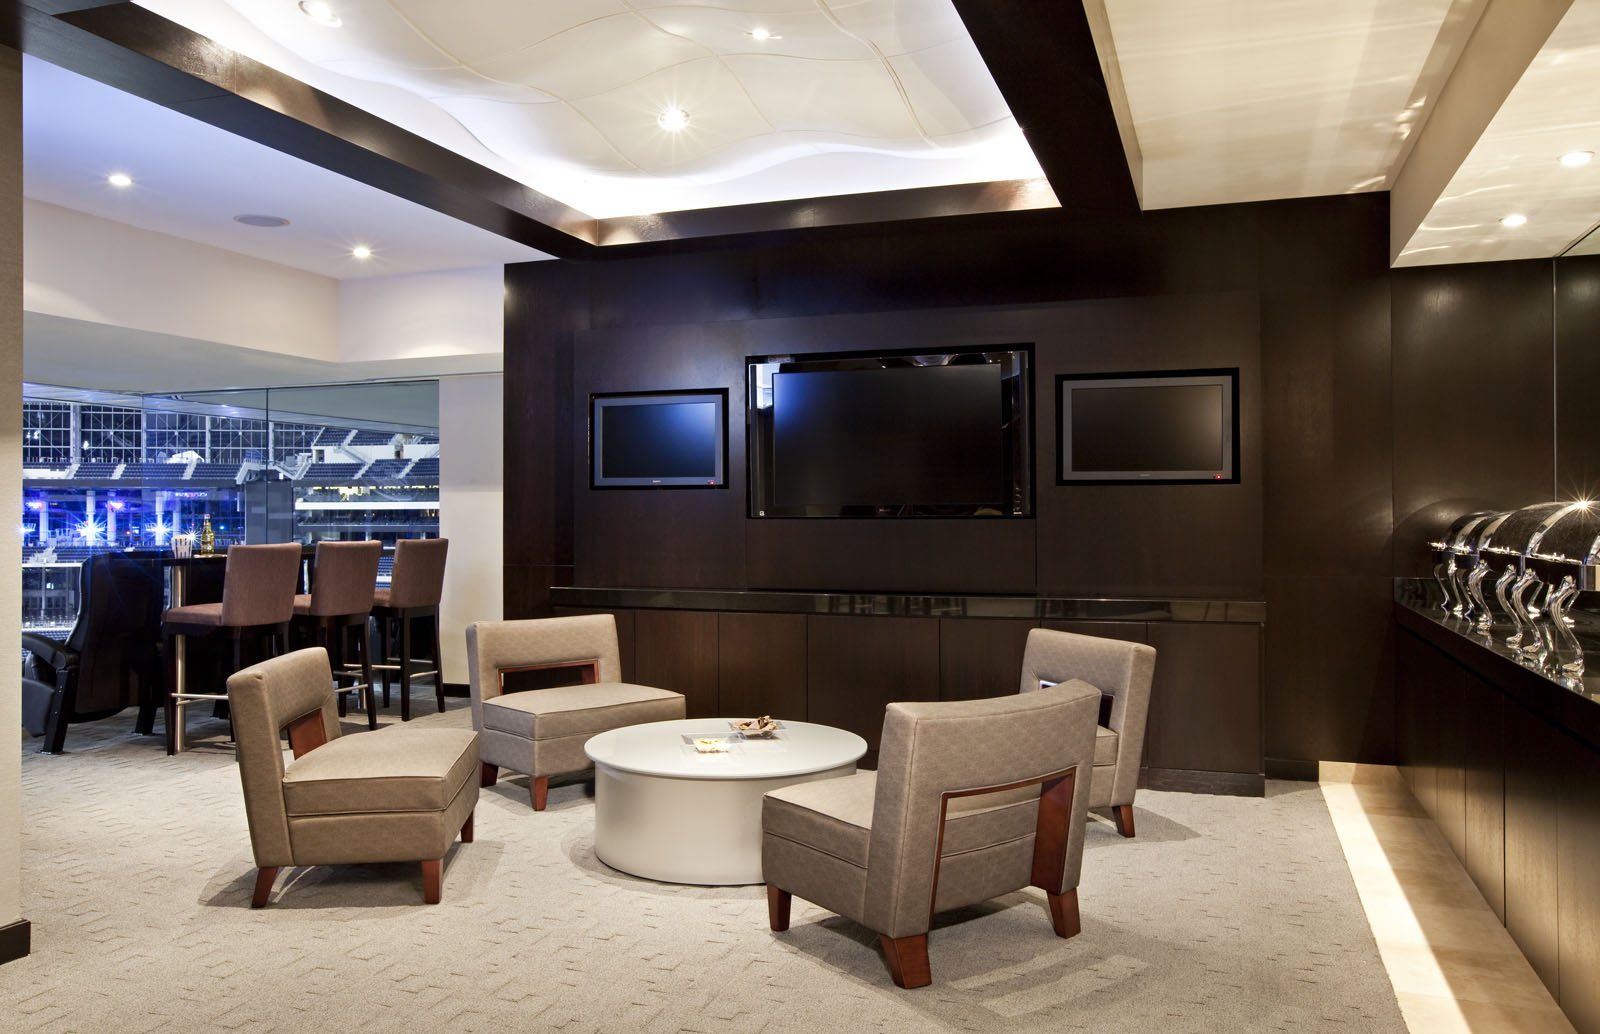 Super bowl luxury suites and super bowl packages new for Mercedes benz superdome suites